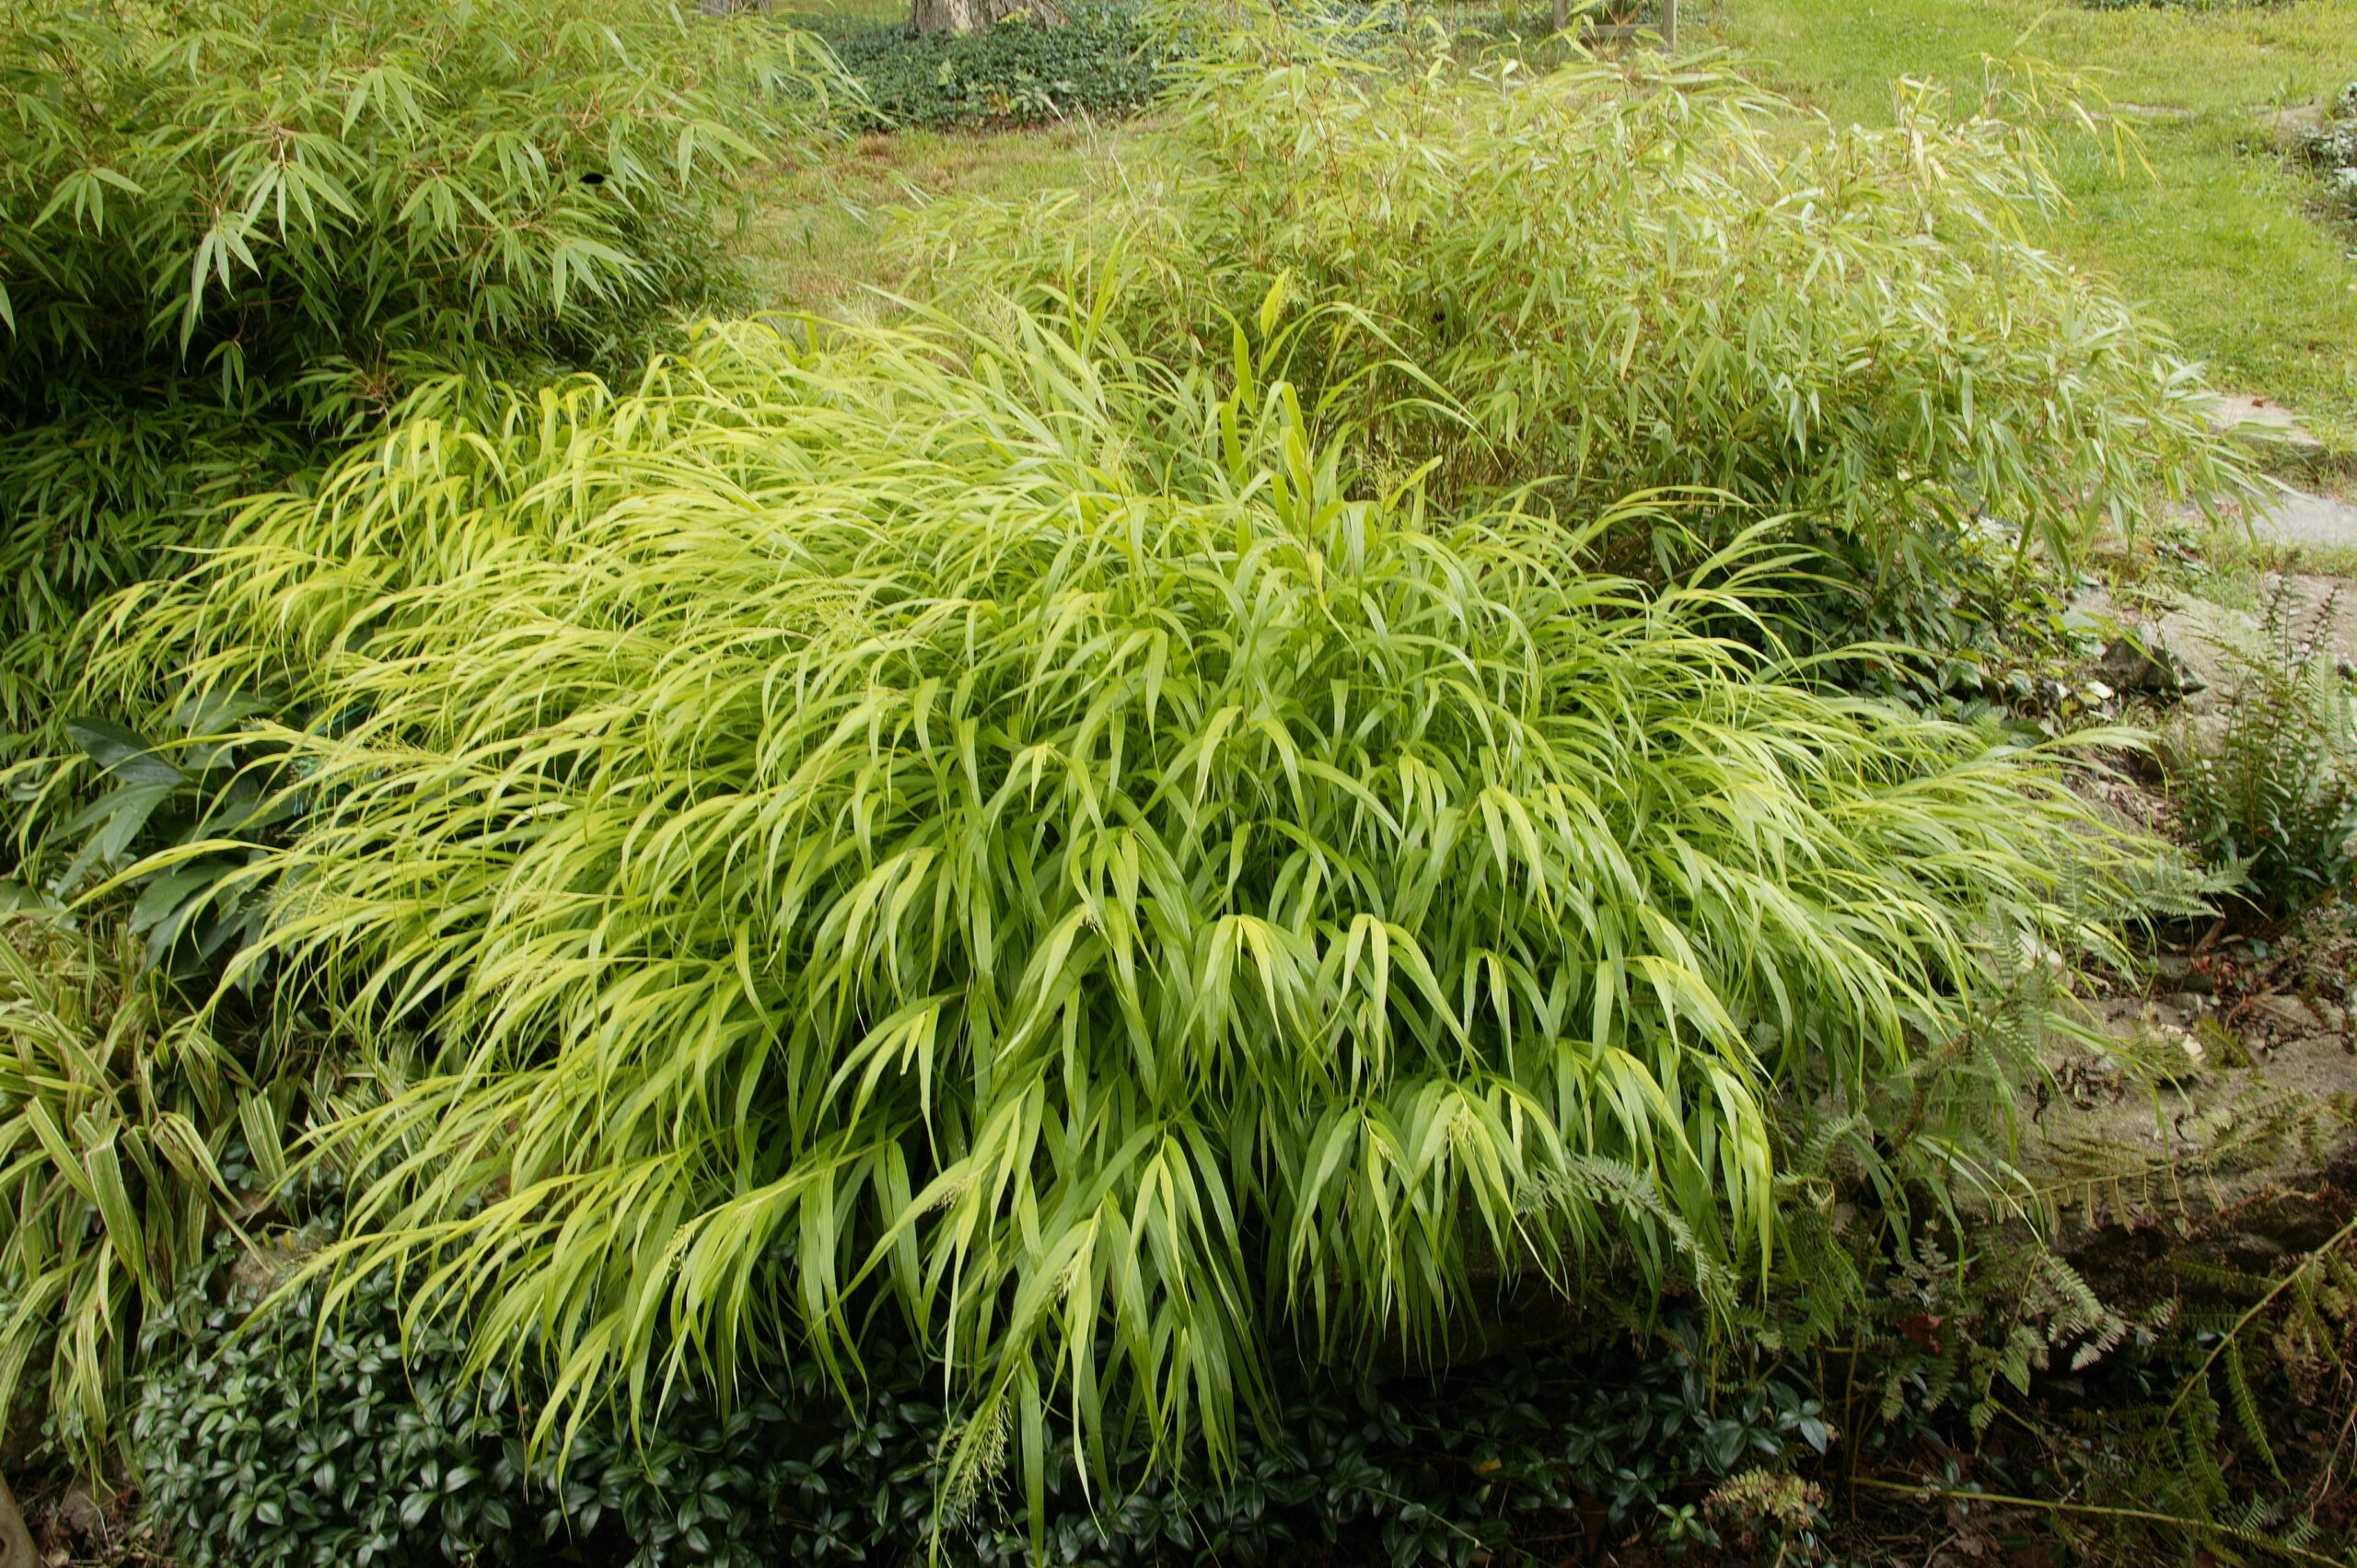 'All Gold' Japanese forest grass